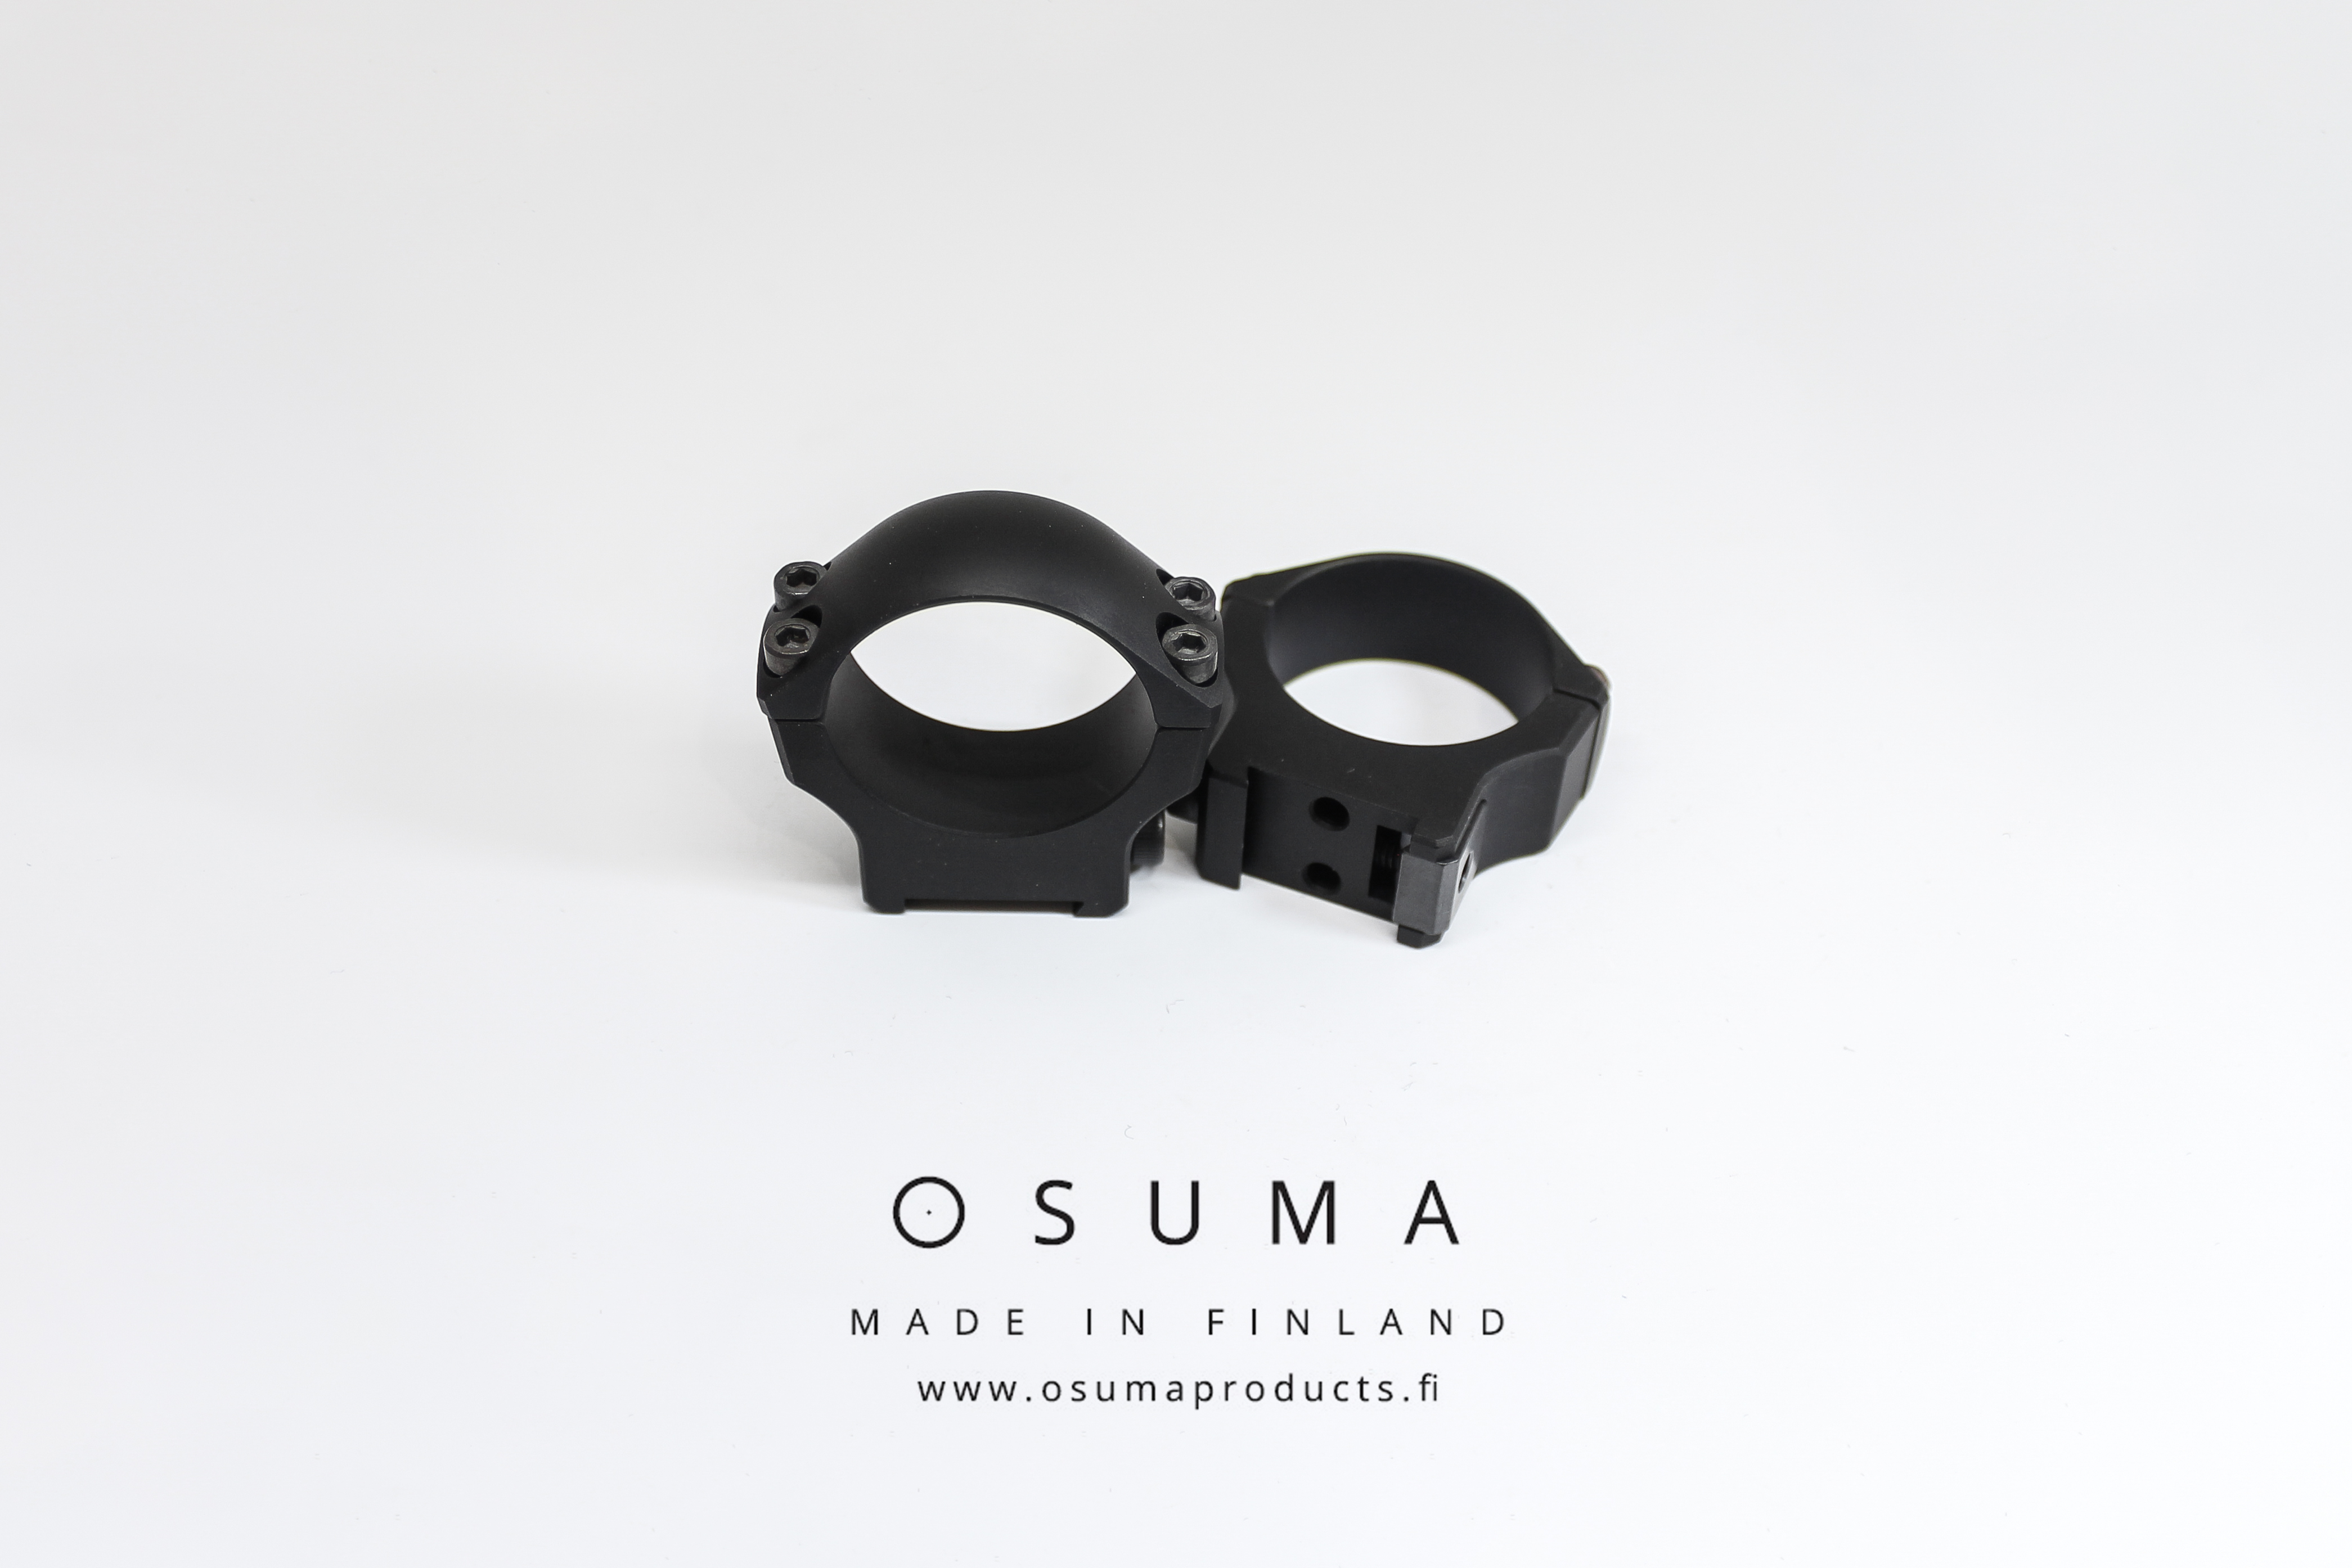 Osuma kiikarinjalka 40mm matala Picatinny OUTLET